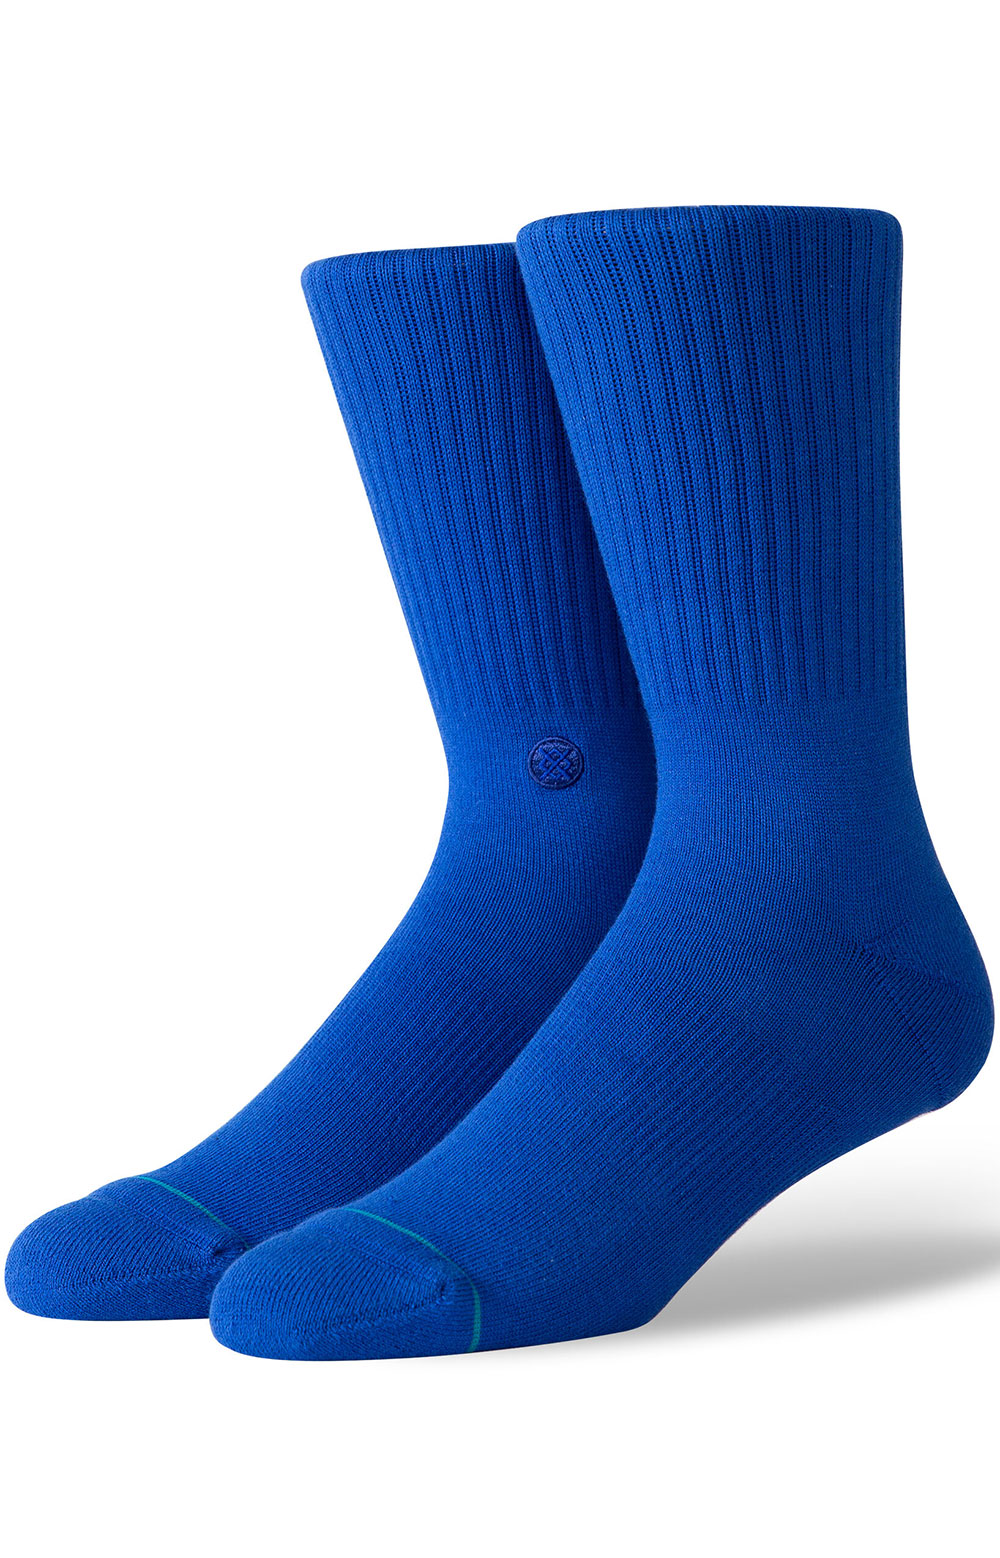 Icon Socks - Cobalt Blue